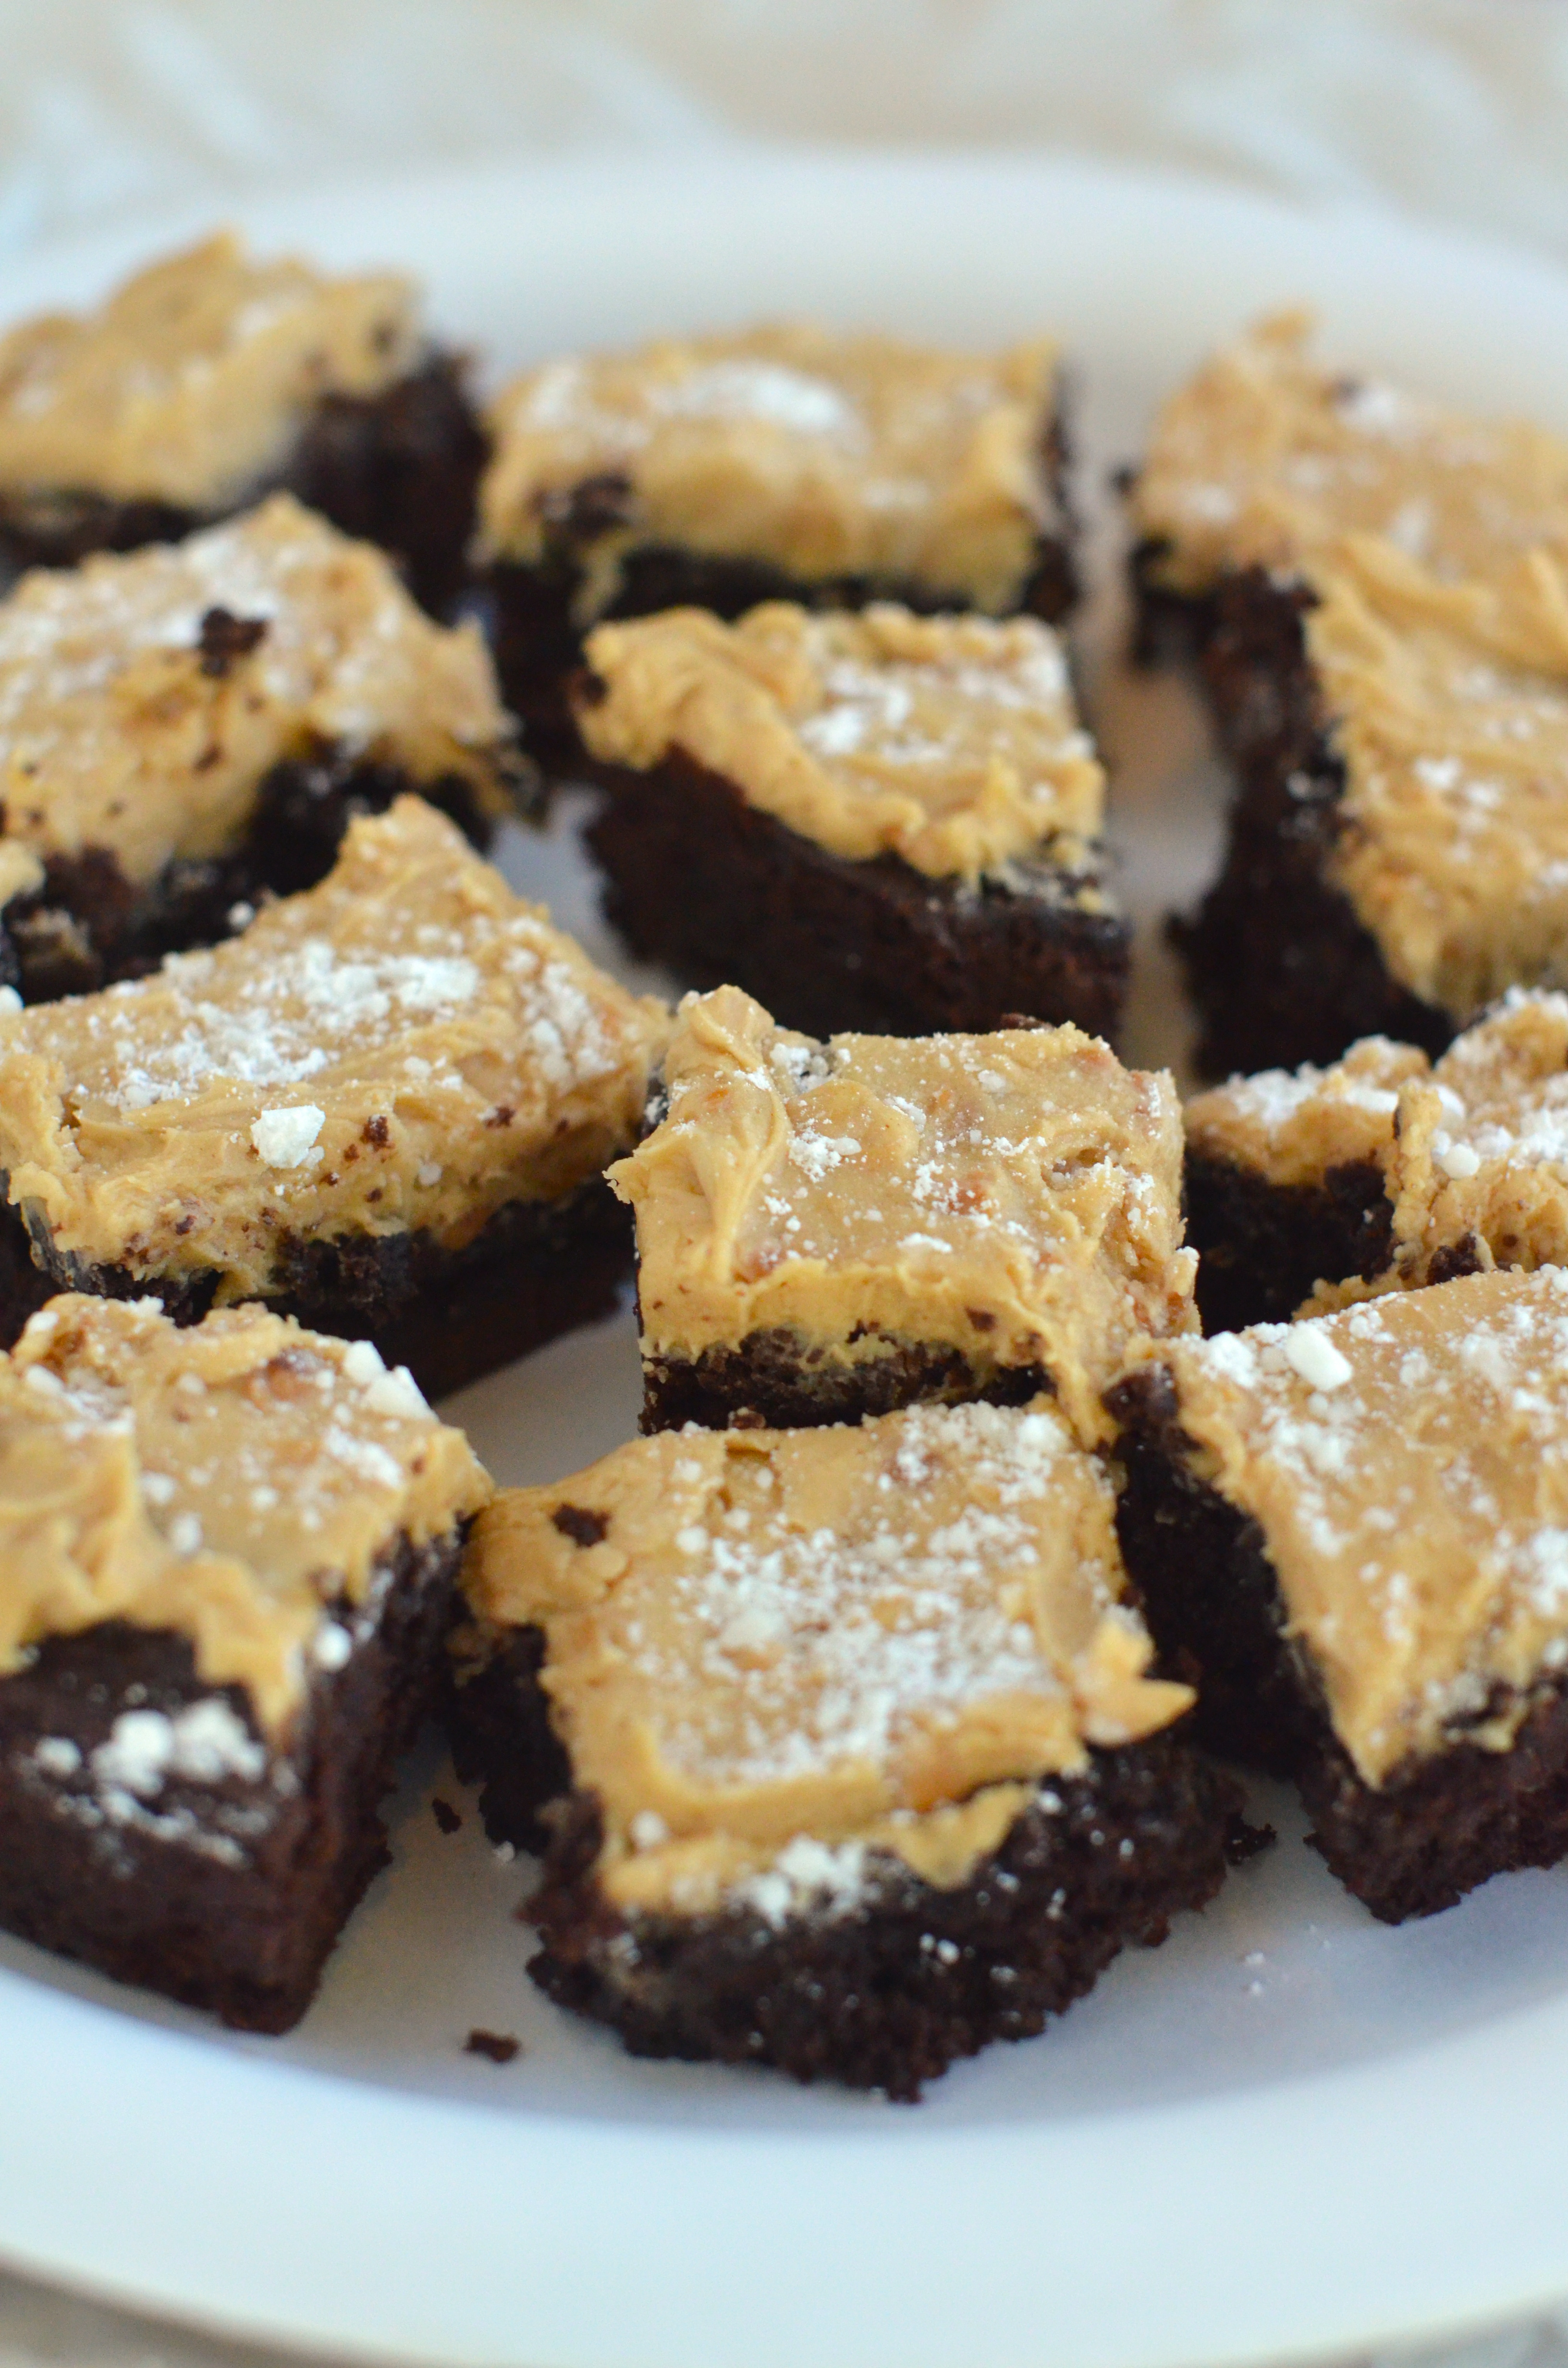 Dark Chocolate Brownies with Peanut Butter Frosting